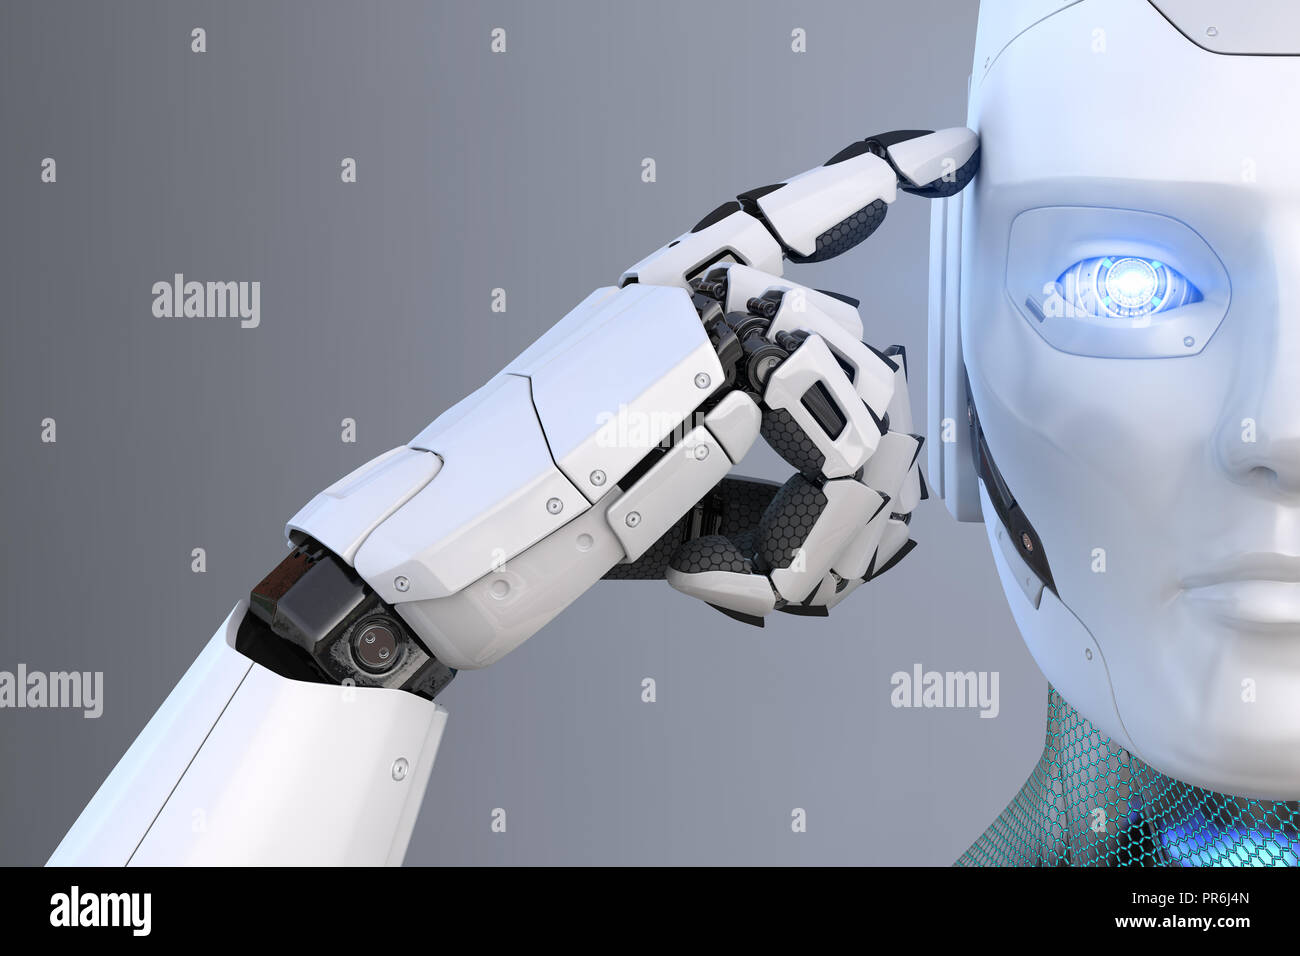 Robot holds a finger near the head. 3D illustration - Stock Image